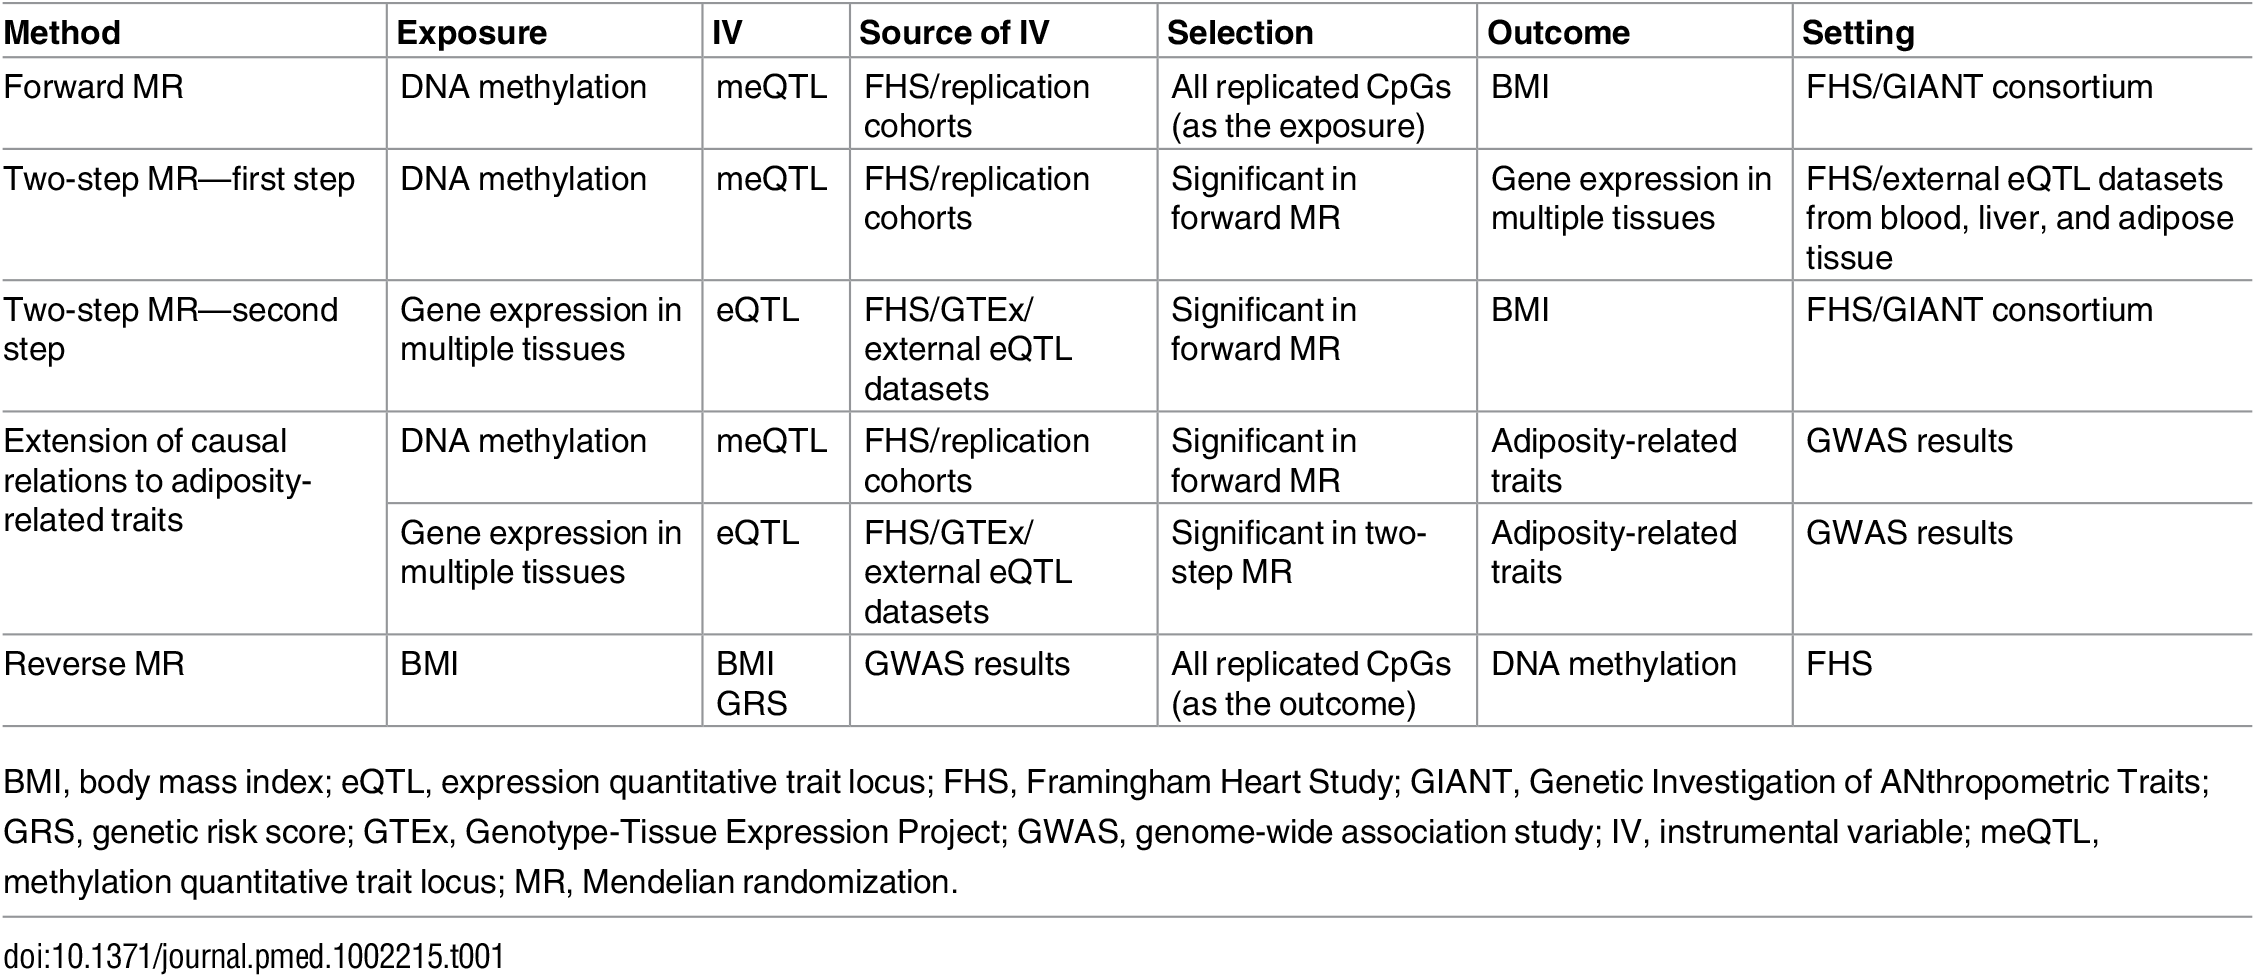 Schema of instrumental variable analyses conducted in order to infer the potential causal relations between DNA methylation, gene expression, BMI, and adiposity-related disease.